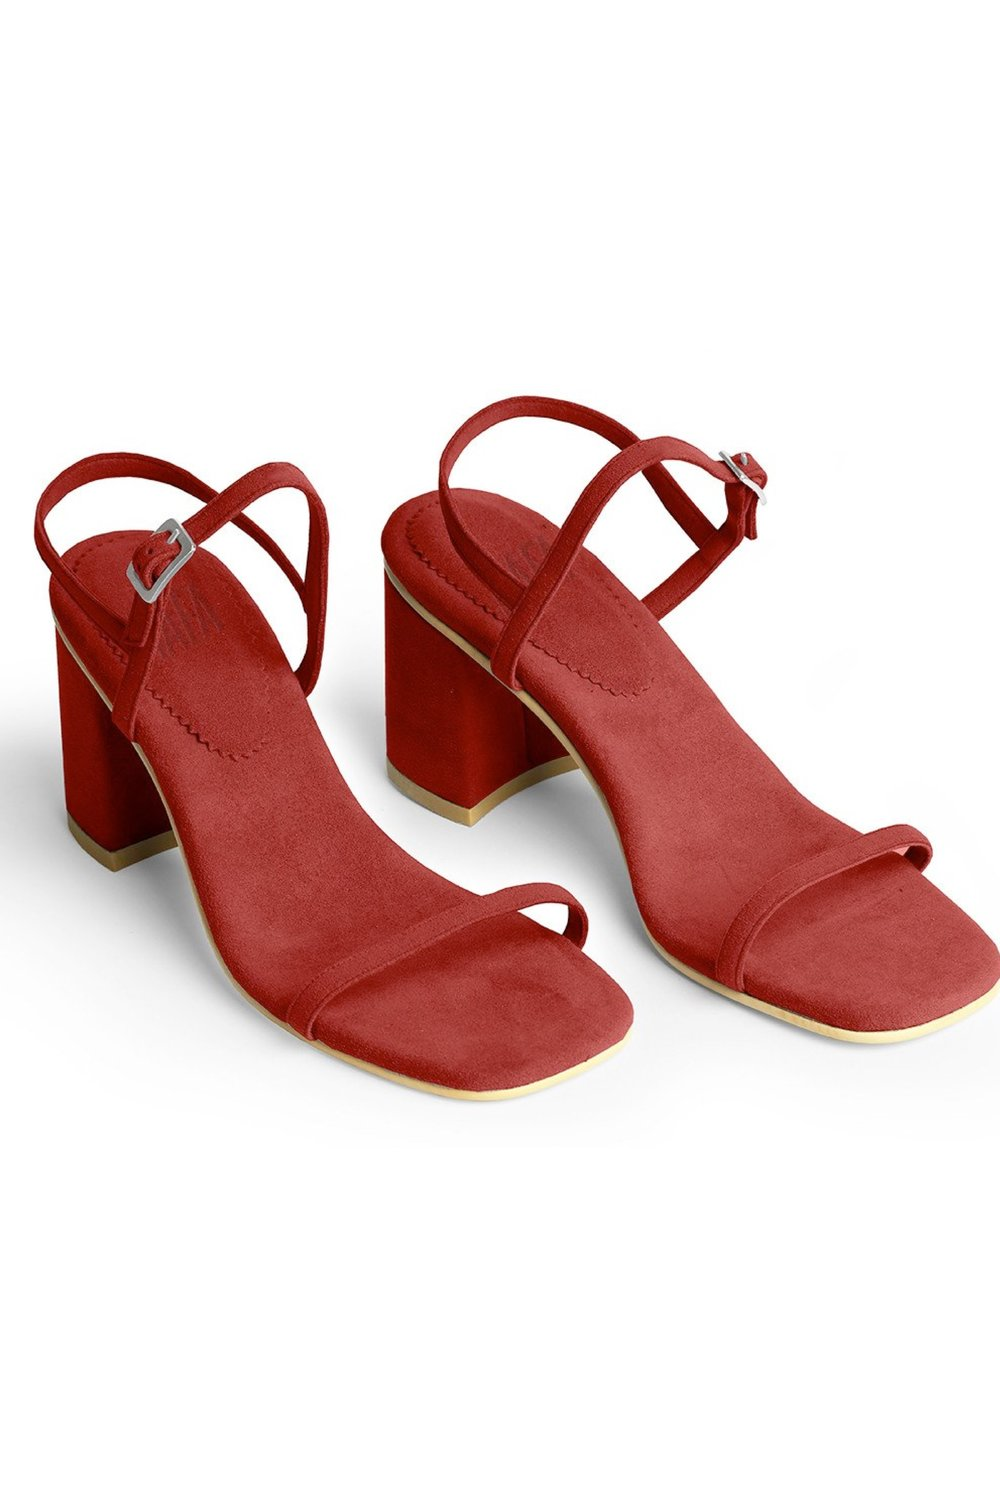 Handcrafted sustainable eco-suede sandal